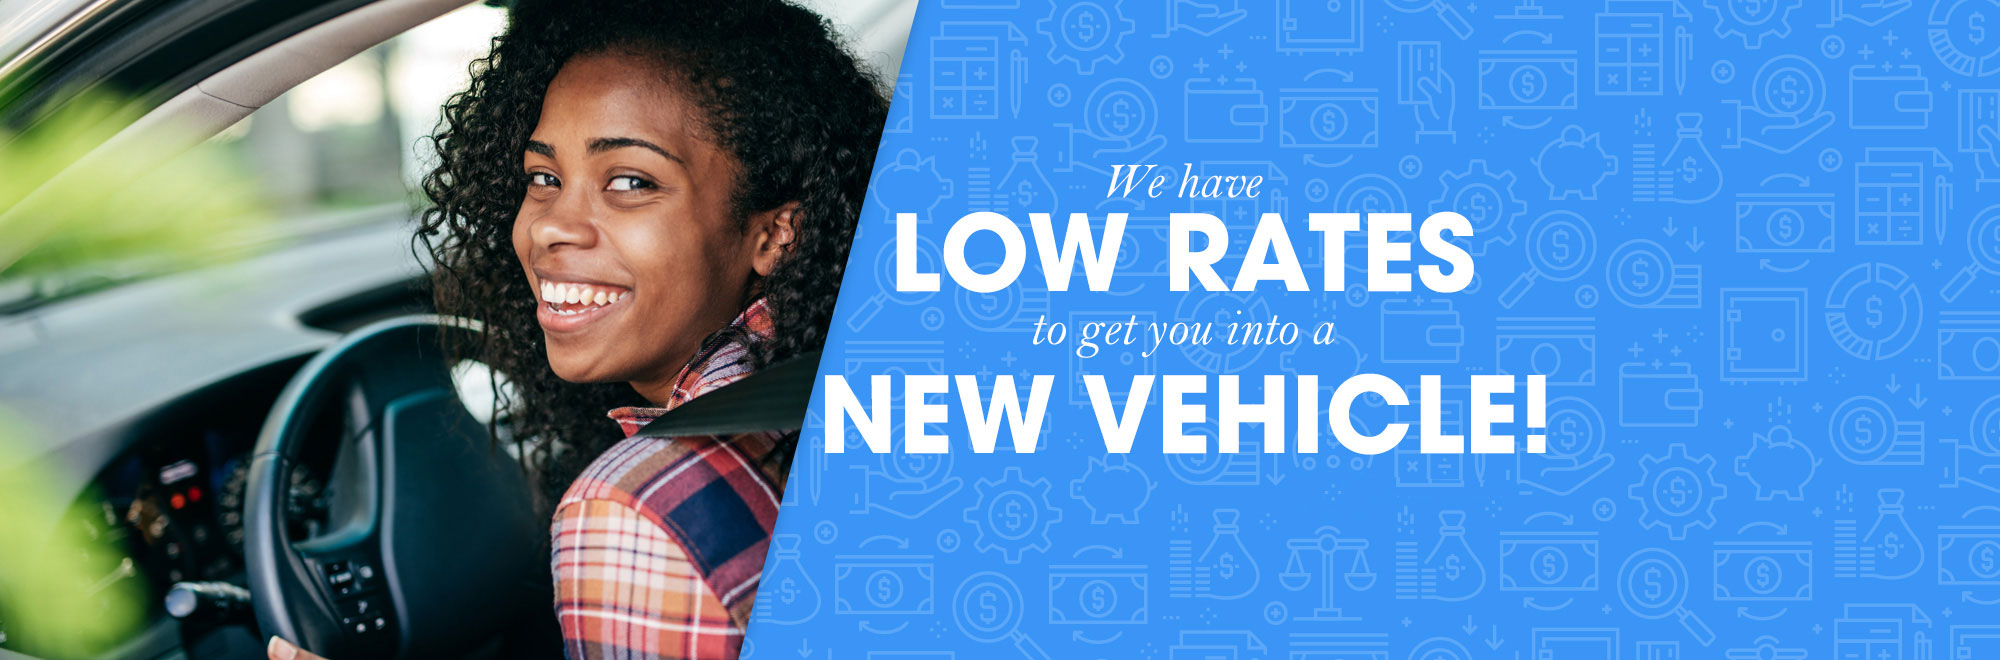 We have low rates to get you in a new vehicle